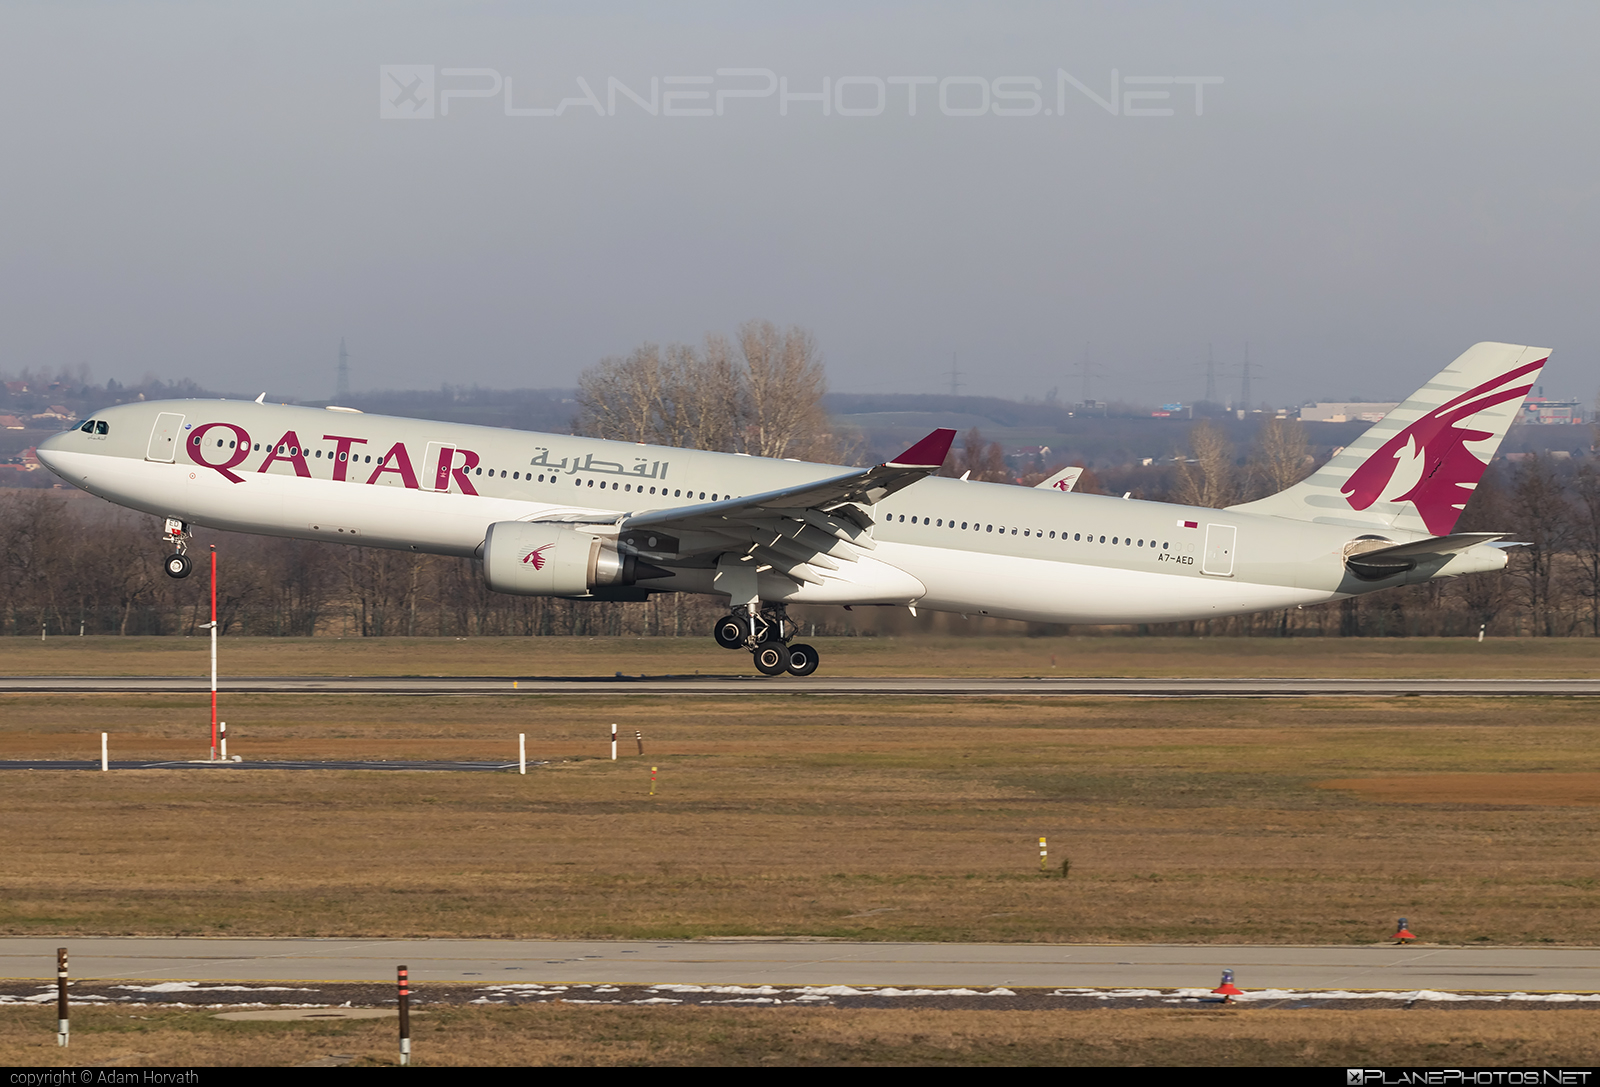 Airbus A330-302 - A7-AED operated by Qatar Airways #a330 #a330family #airbus #airbus330 #qatarairways